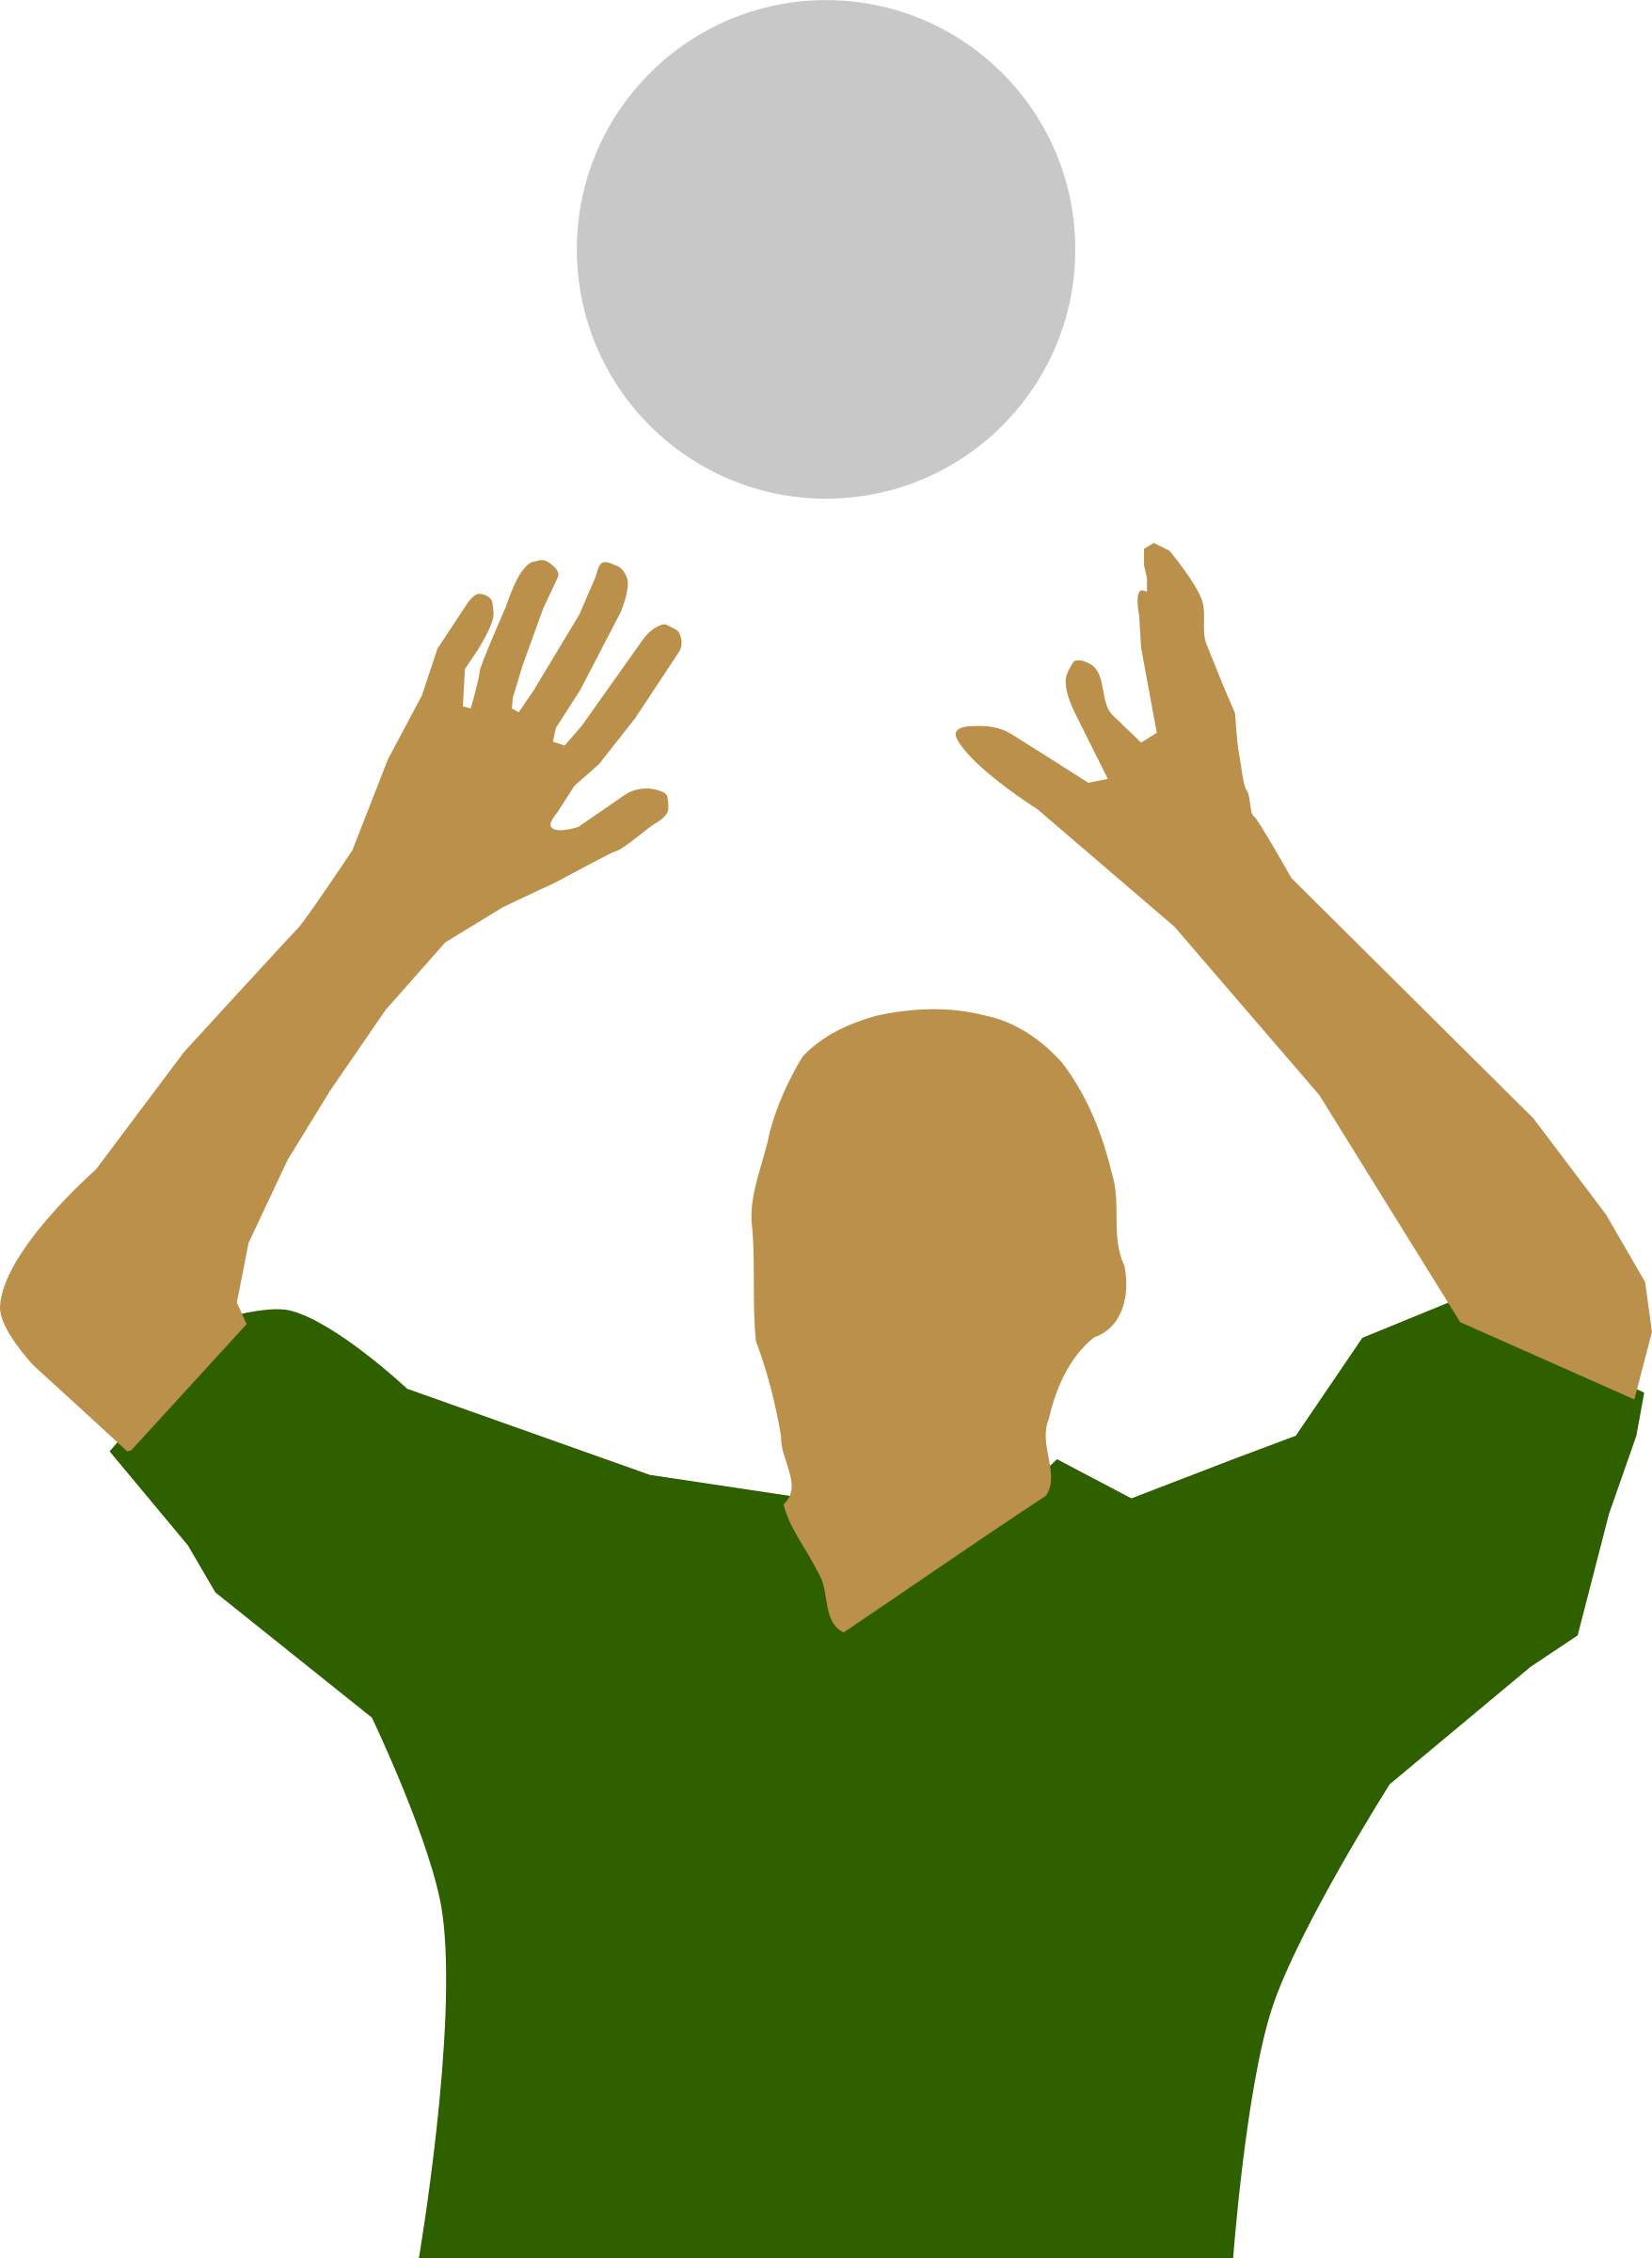 Warrior clipart volleyball. Player silhouette big image